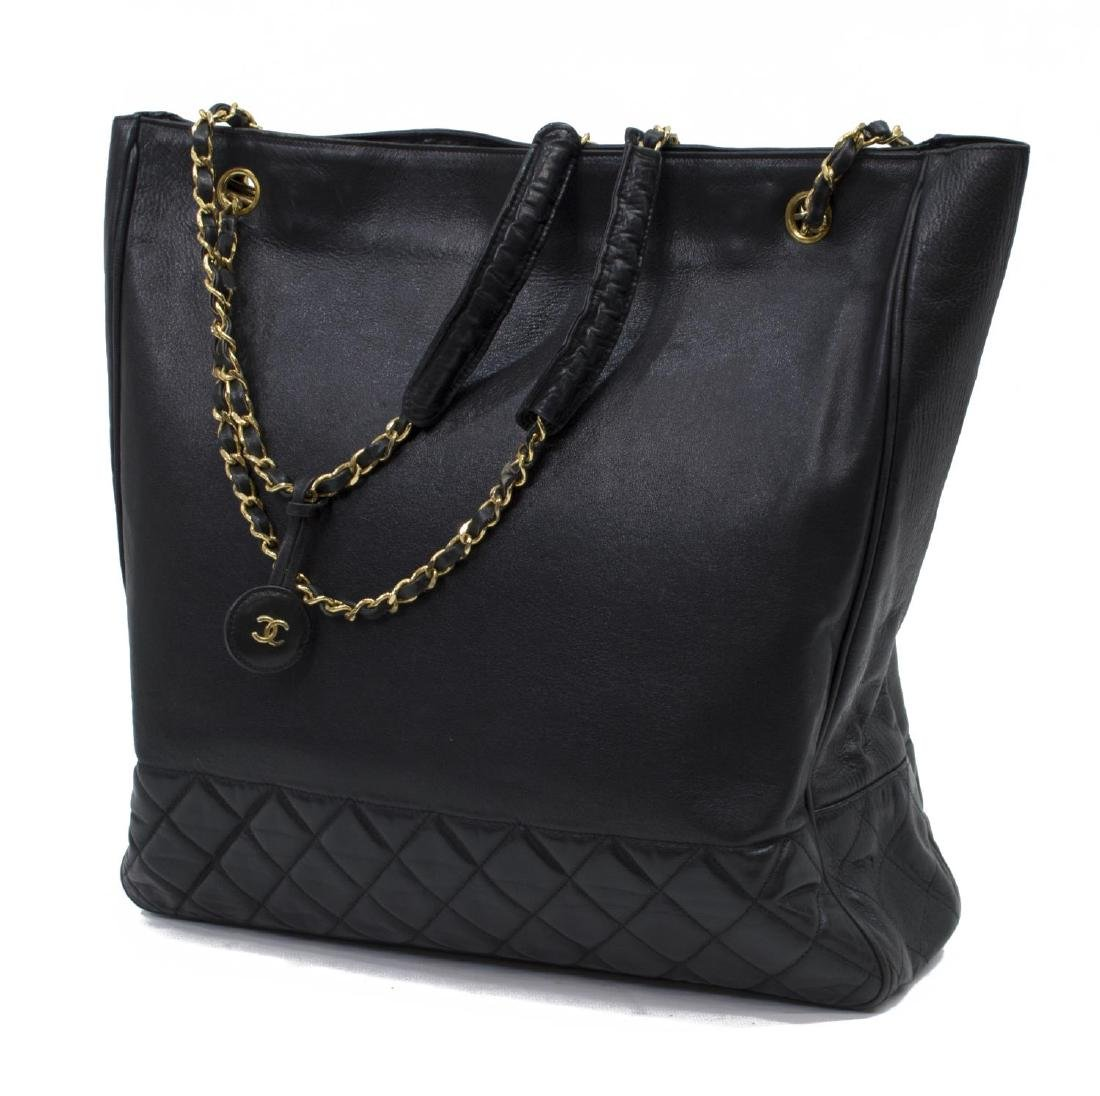 LARGE CHANEL QUILTED SMOOTH BLACK LEATHER TOTEBAG